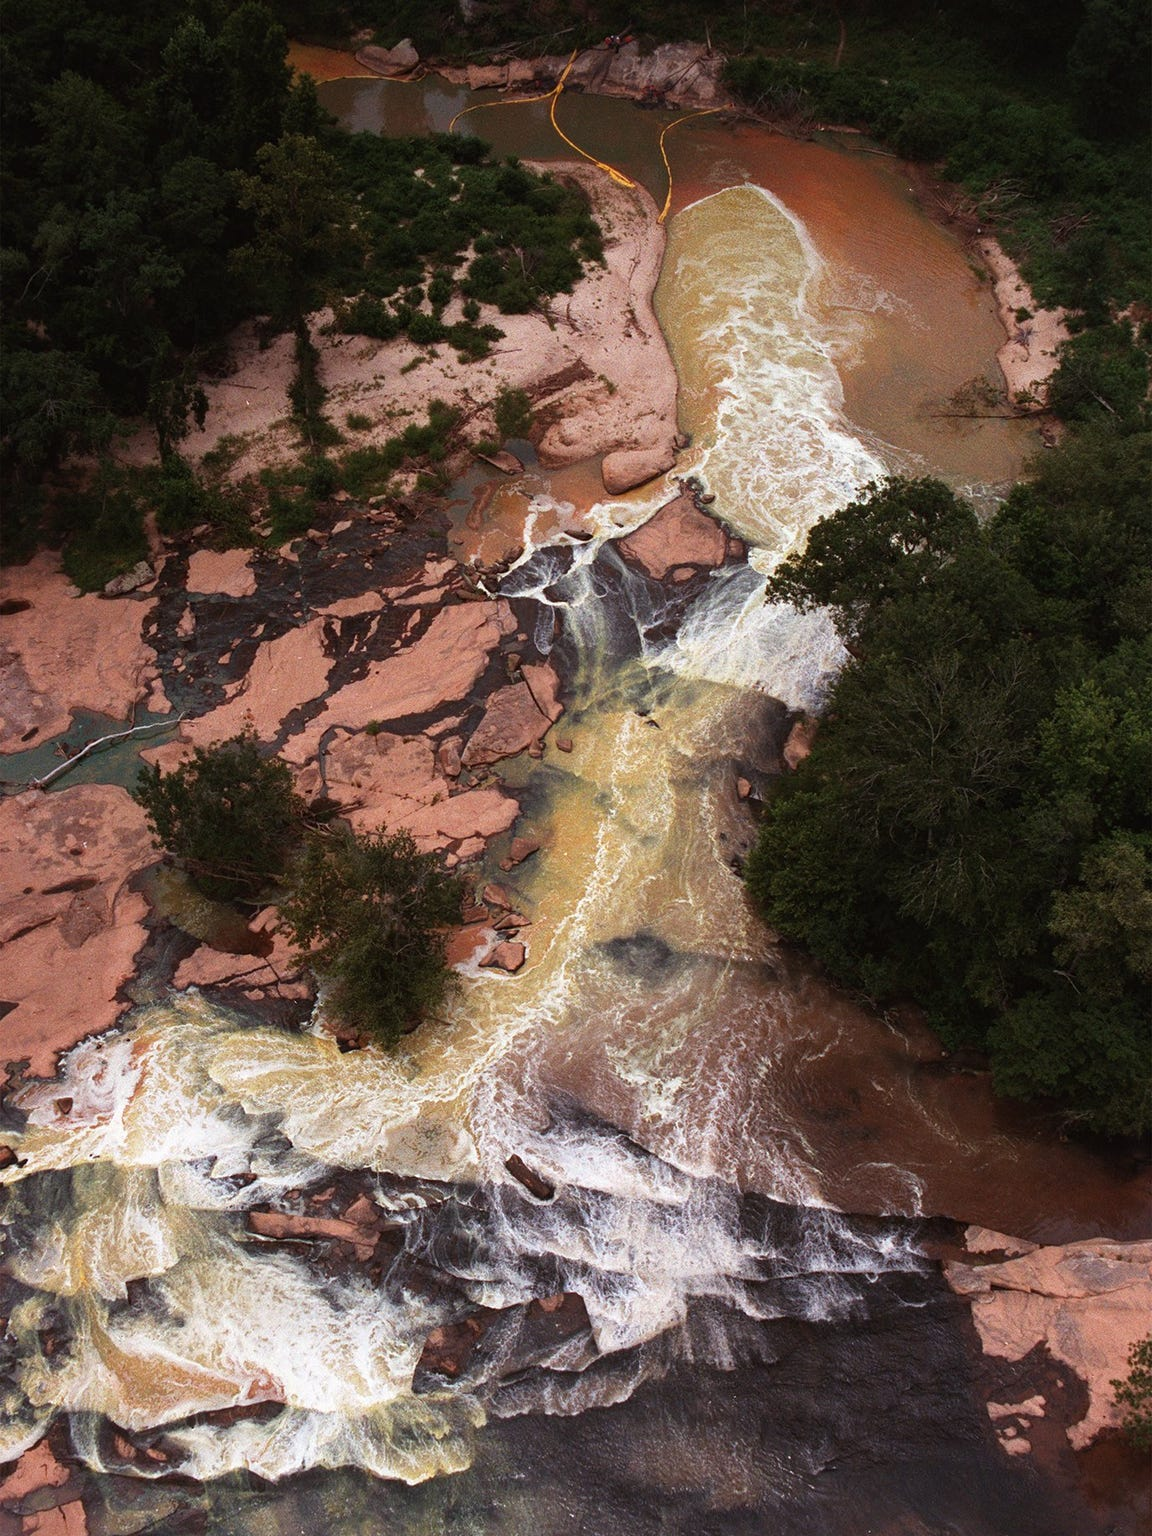 Contaminated water flows in the Reedy River toward